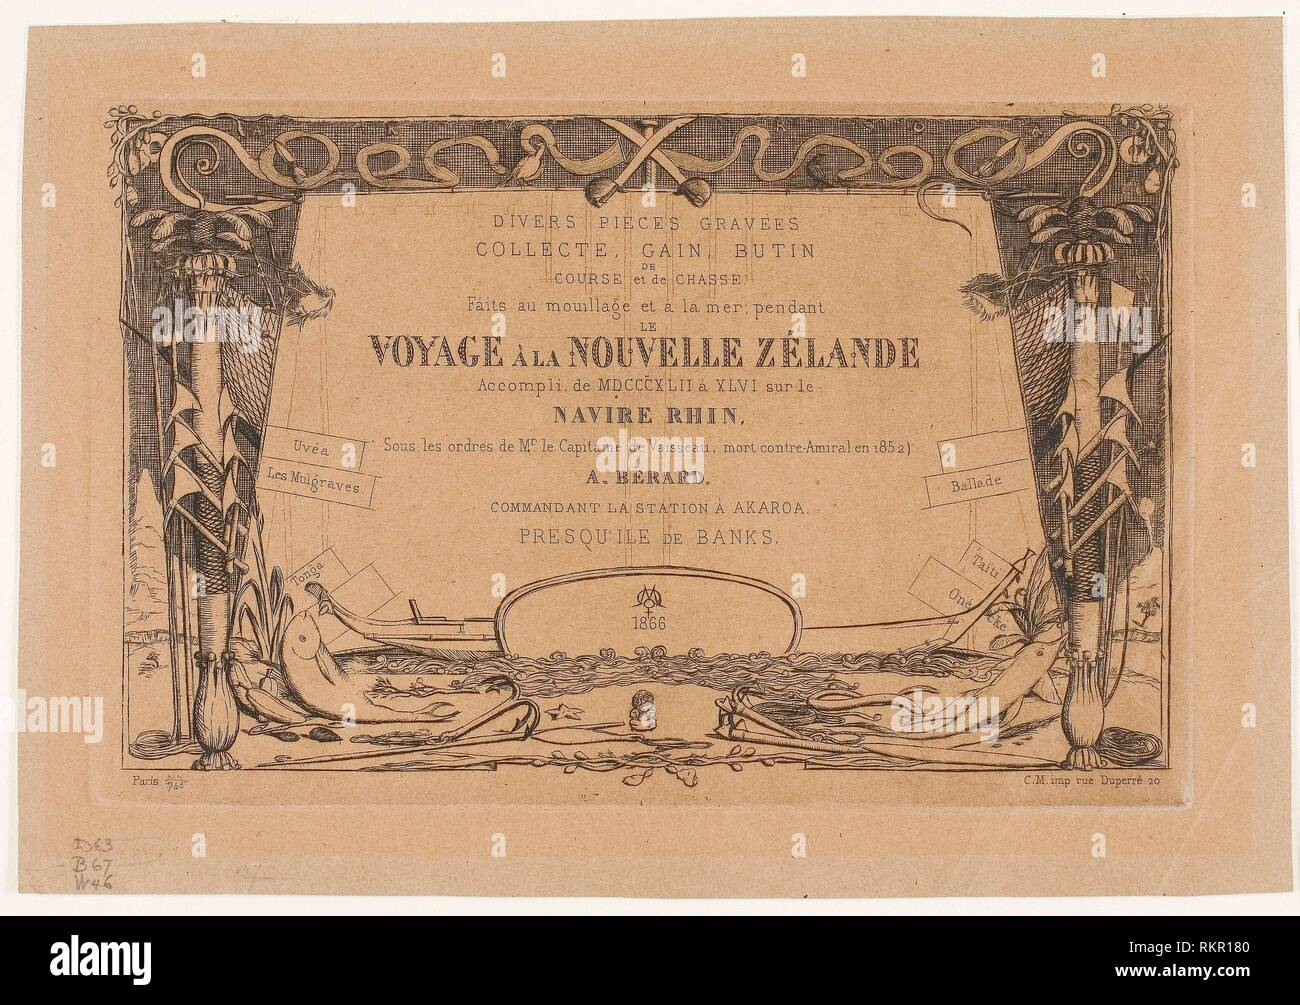 Cover for a Voyage to New Zealand (1842-46) - 1866 - Charles